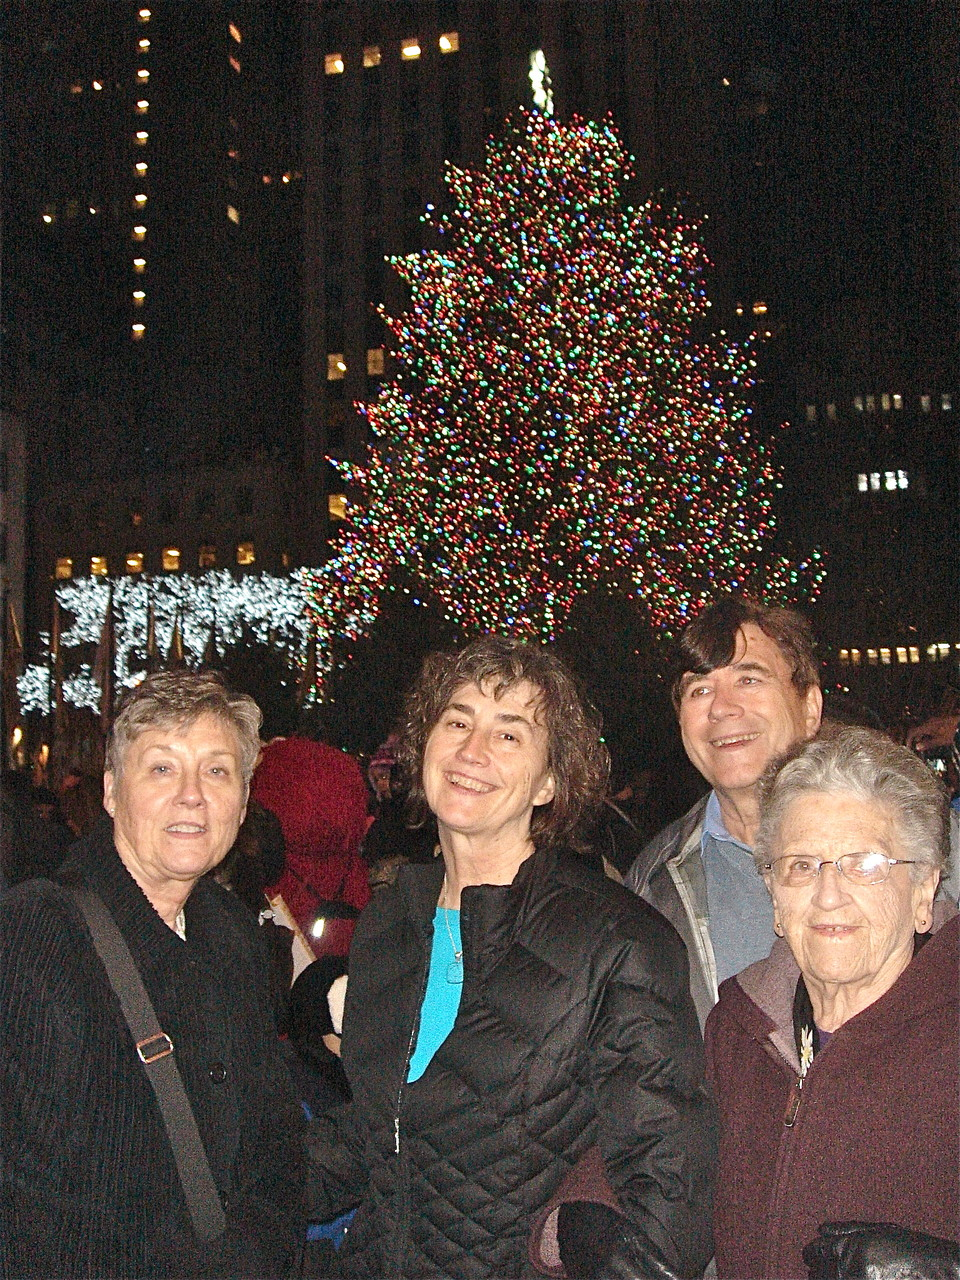 Cindy, Ann, John, & Mary Lou at the Rockefeller Center Xmas Tree  Dec. 27, 2014